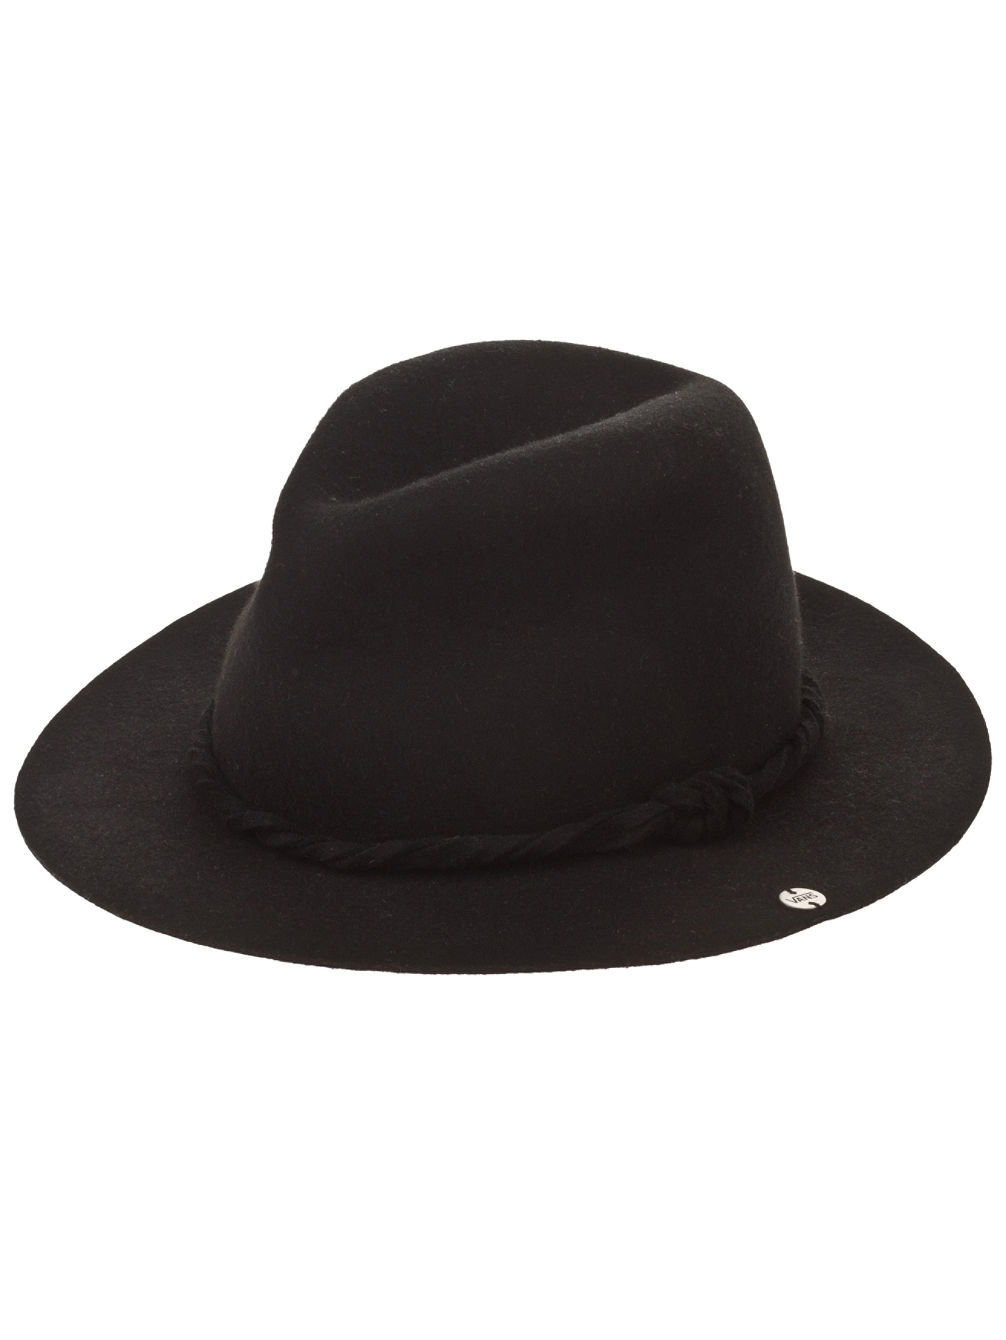 dorance-wide-brim-hat